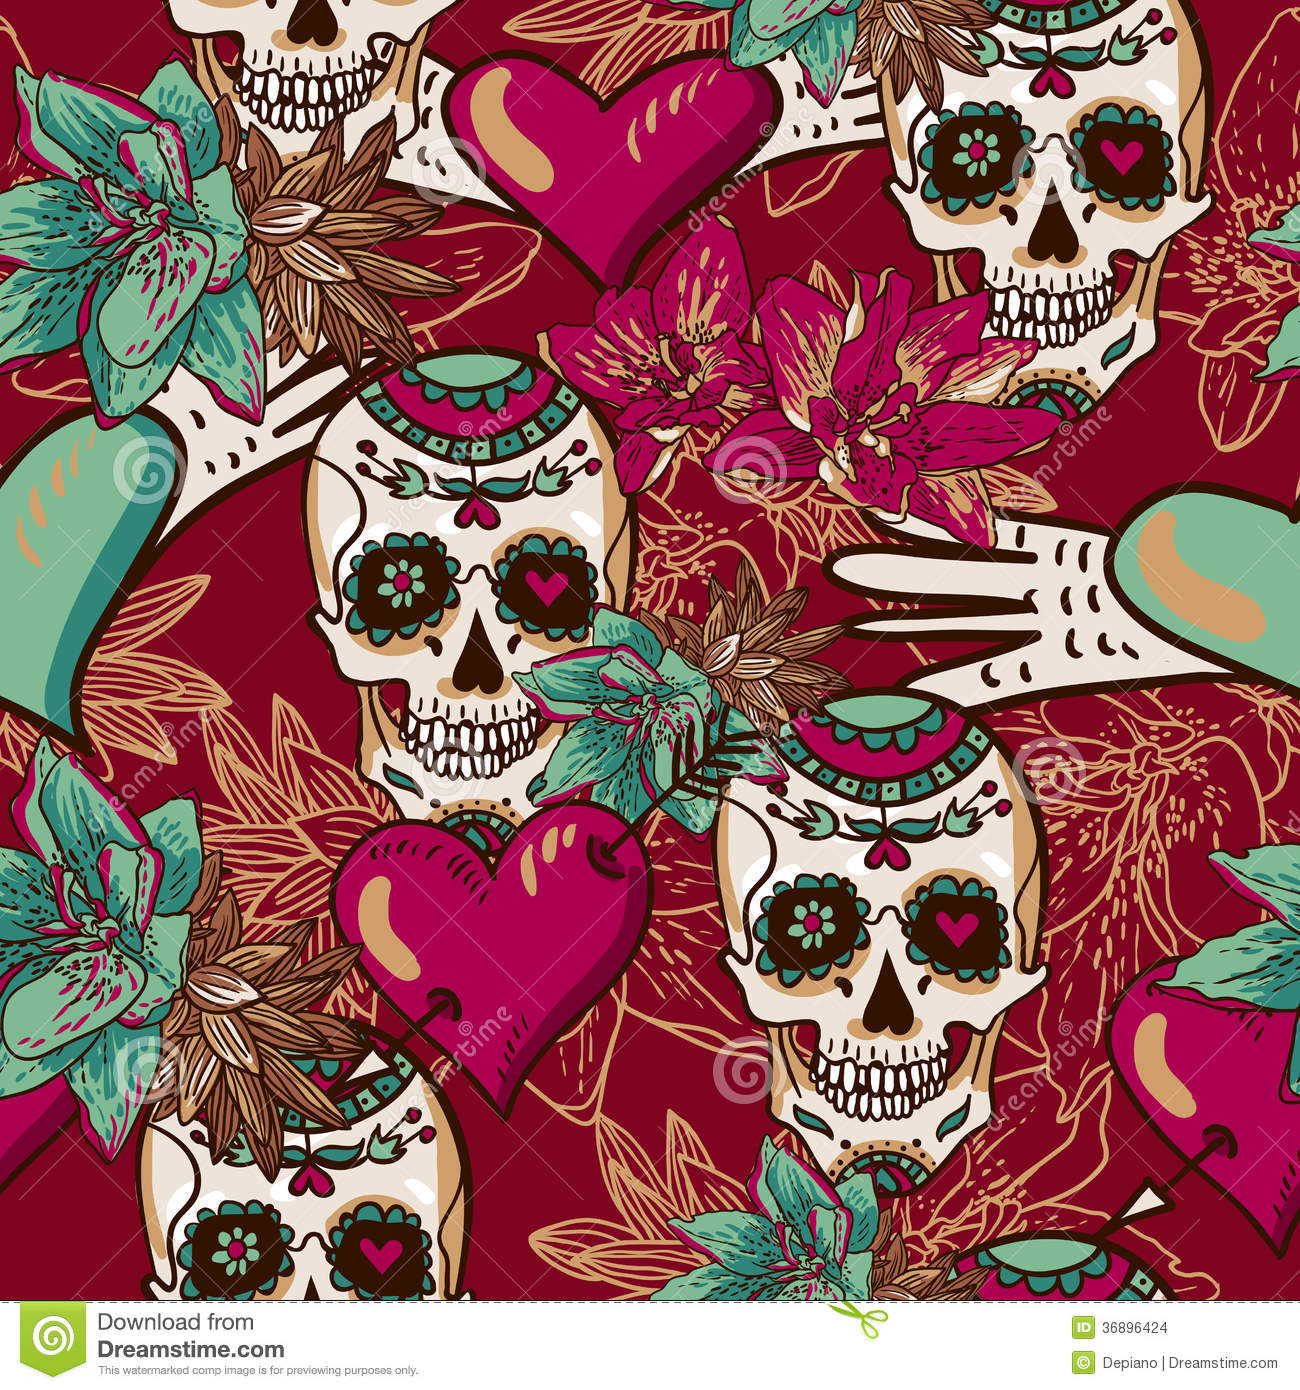 Skeleton Pattern Wallpaper Cute Skull Hearts And Flowers Seamless Background Stock Images